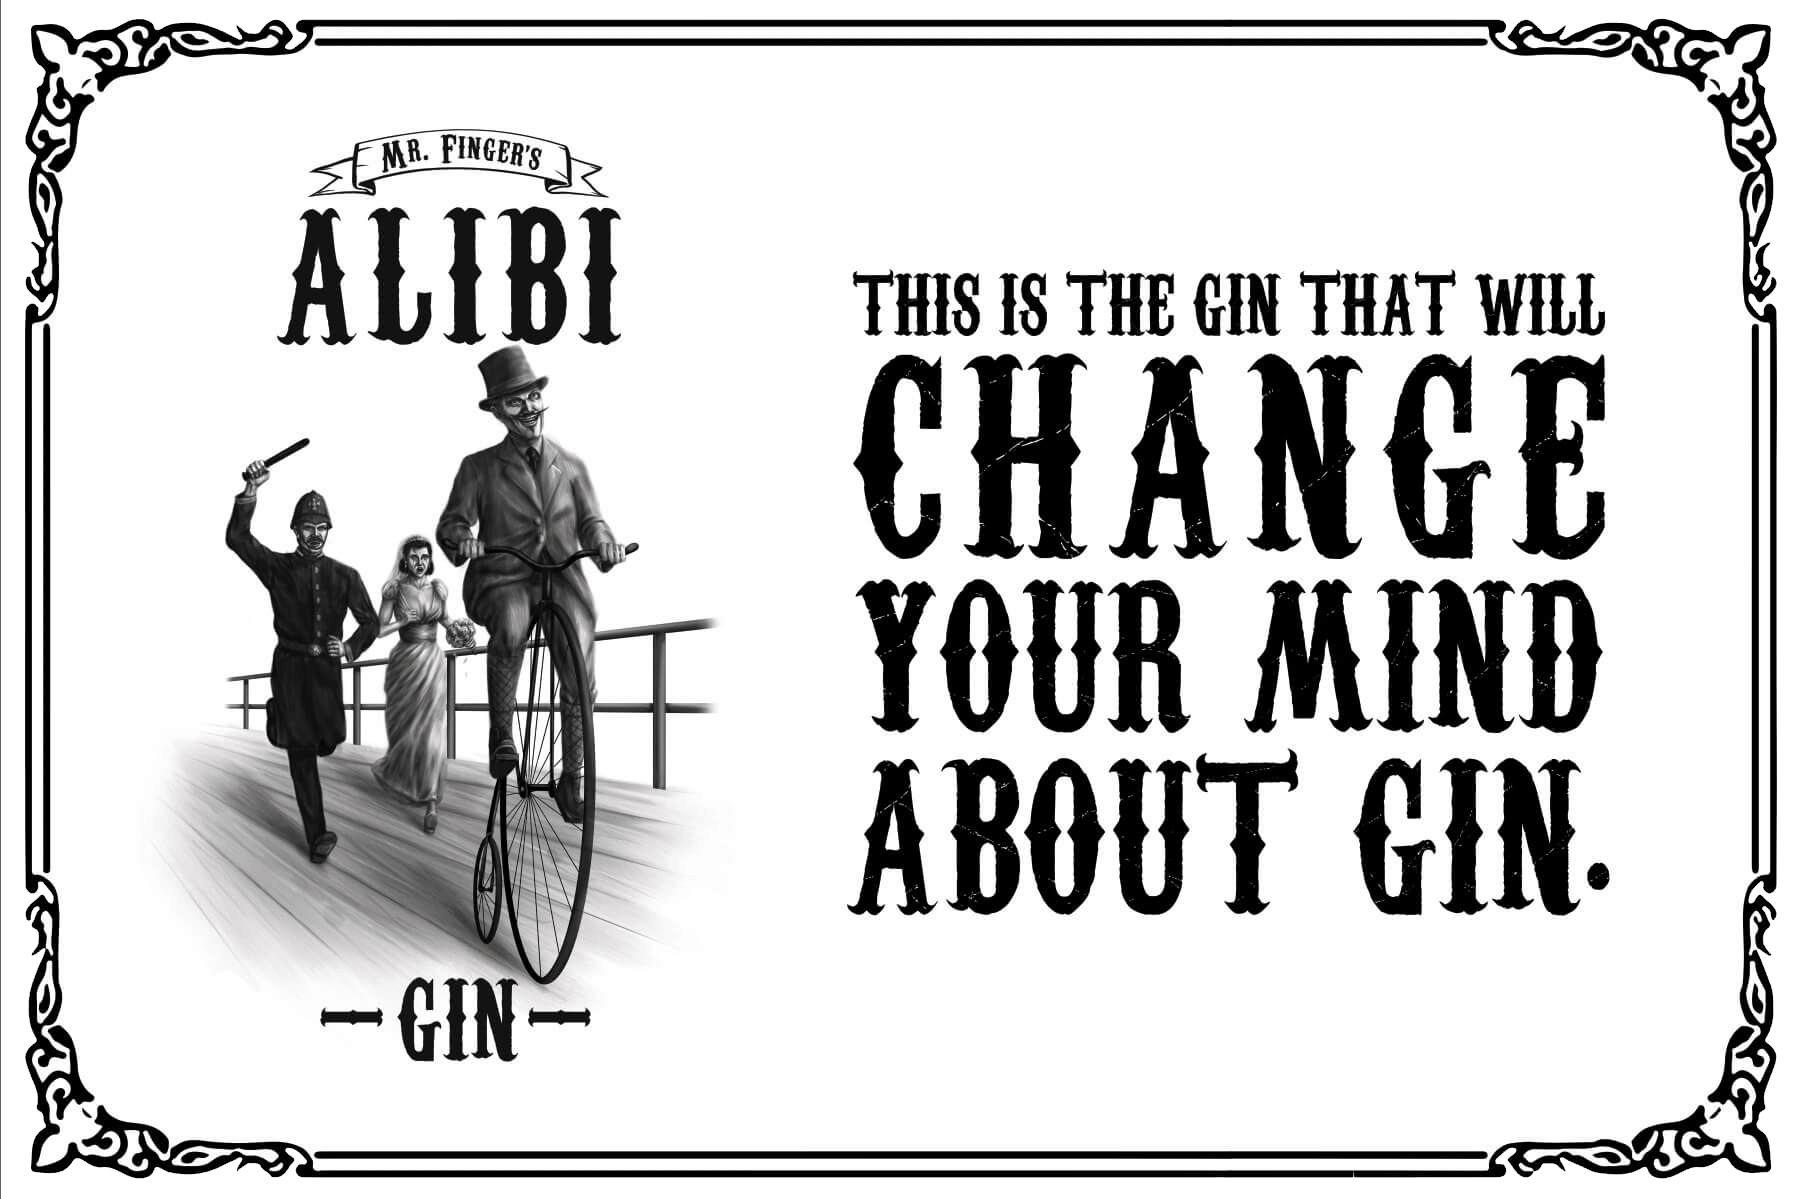 alibi-gin-this-gin-will-change-your-mind.png